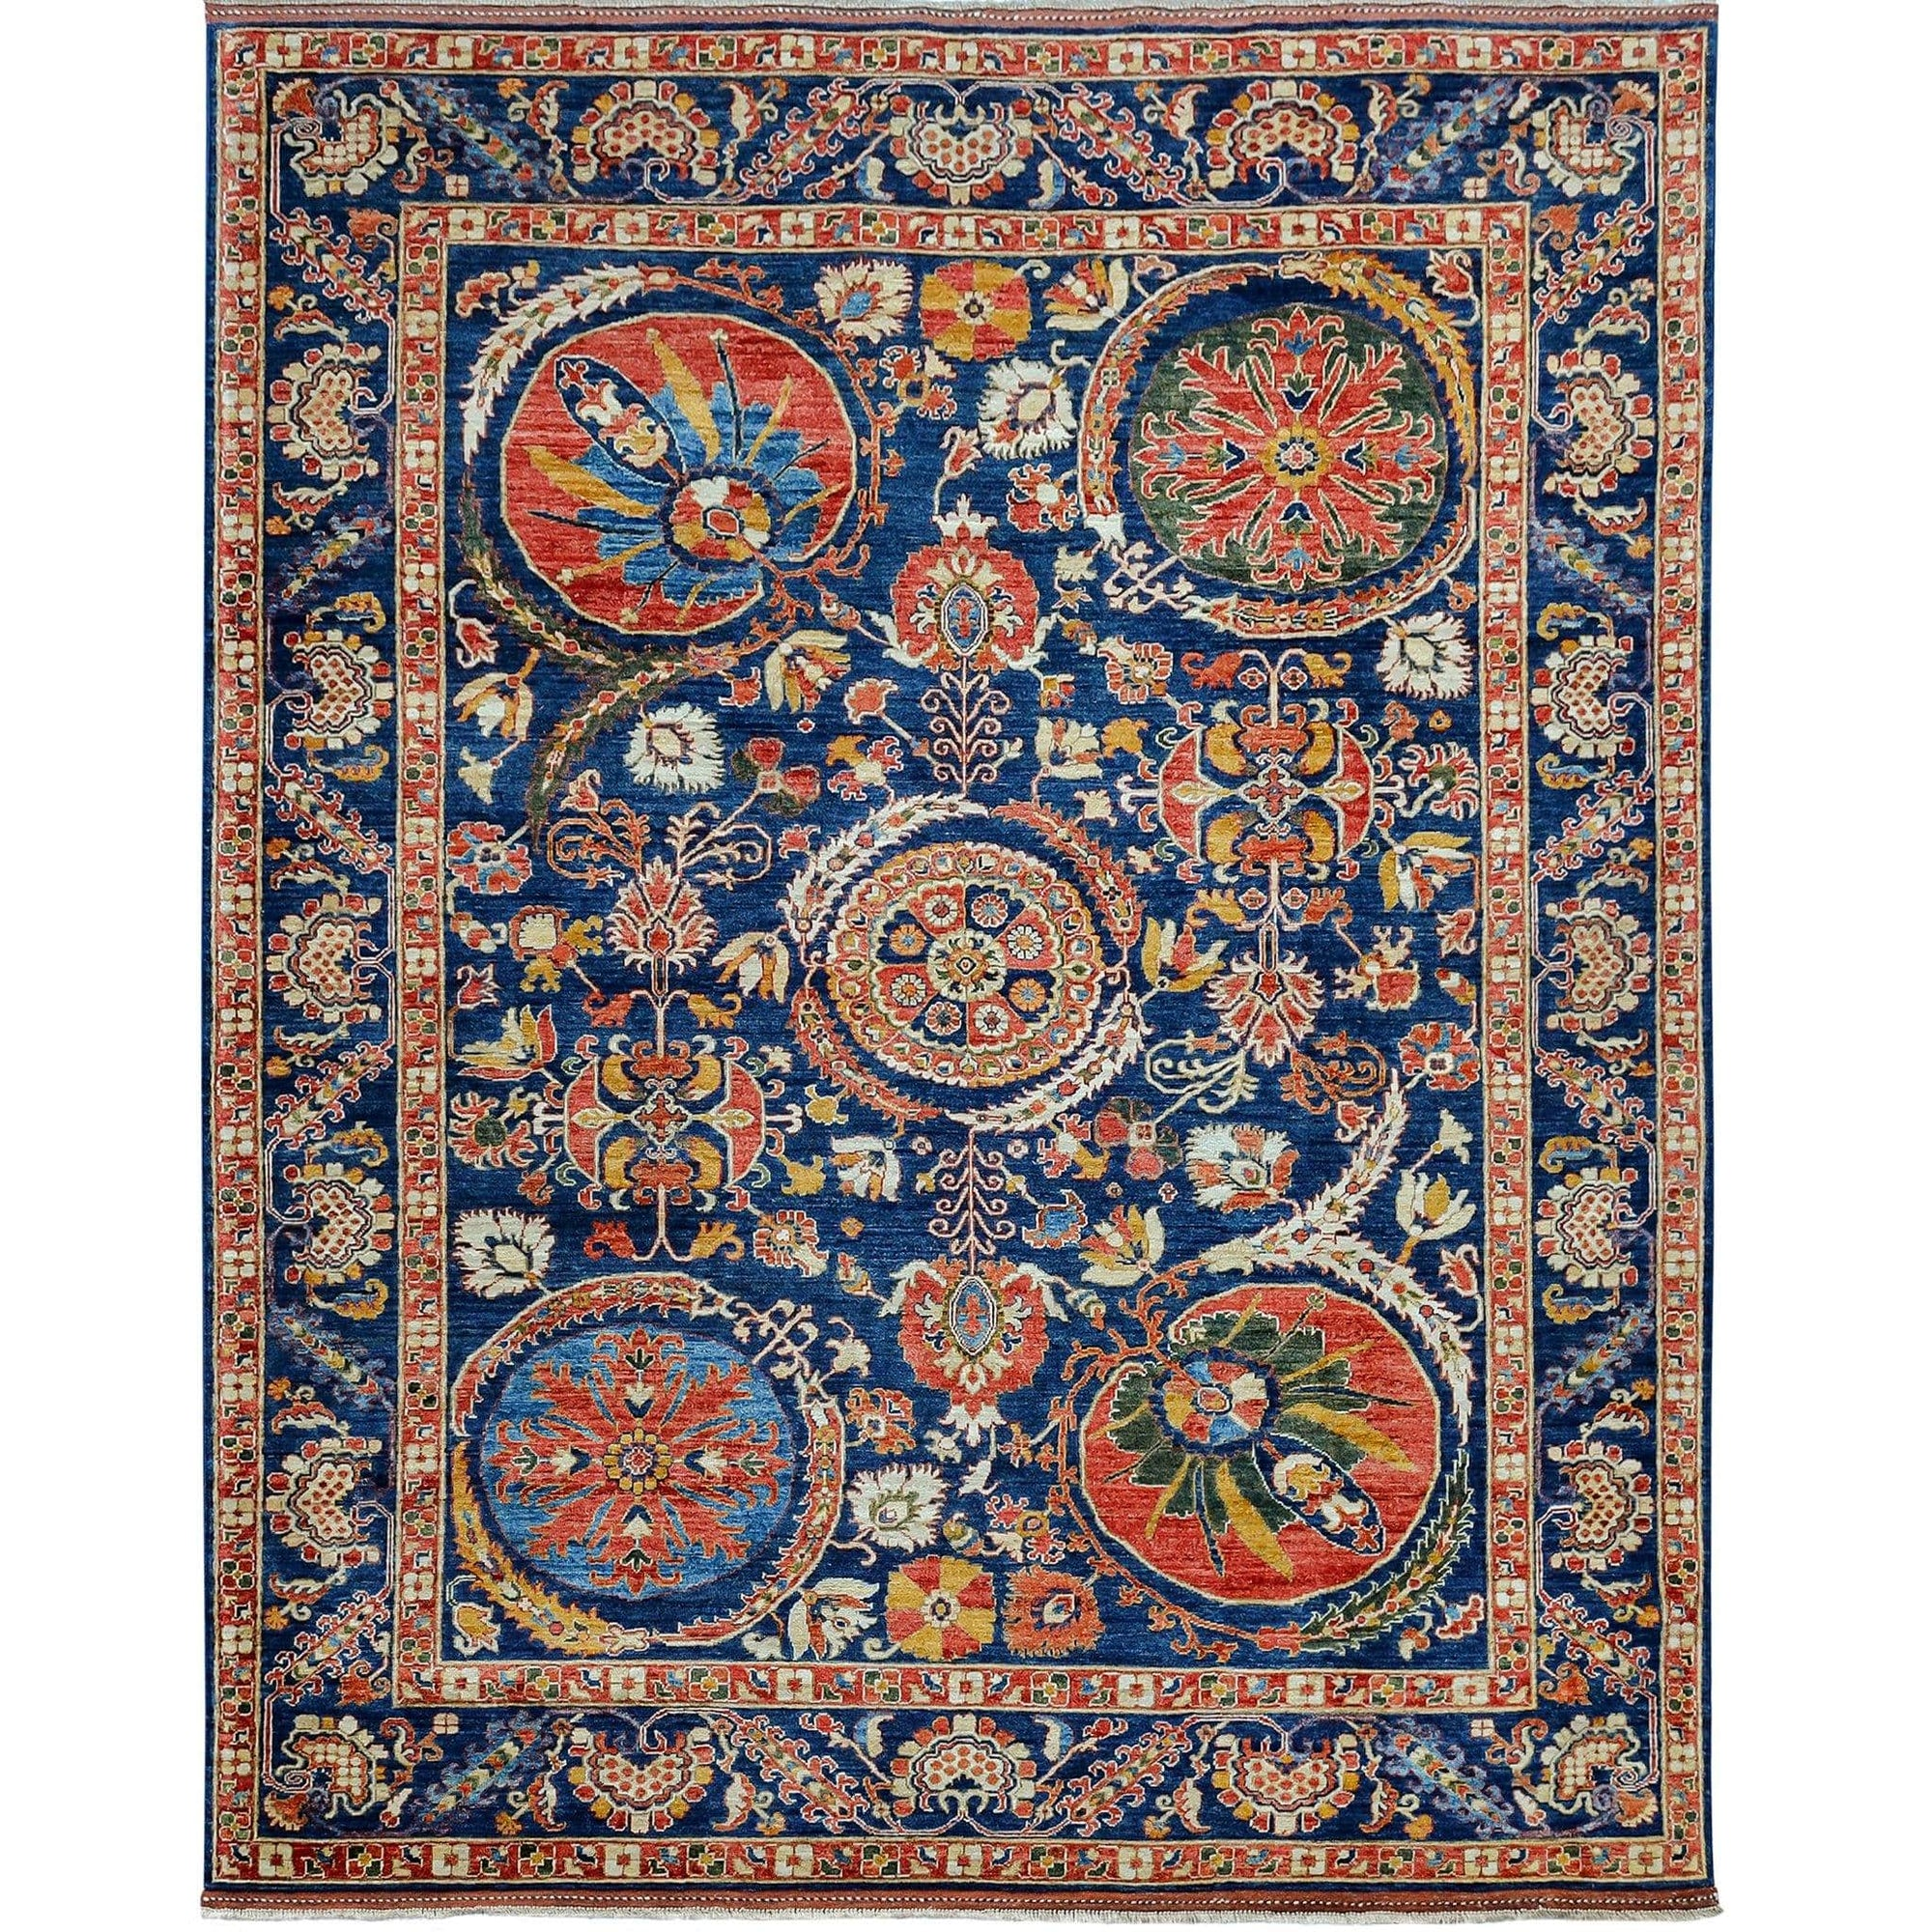 Fine Hand-knotted Tribal Wool Rug 247cm x 299cm Persian-Rug | House-of-Haghi | NewMarket | Auckland | NZ | Handmade Persian Rugs | Hand Knotted Persian Rugs